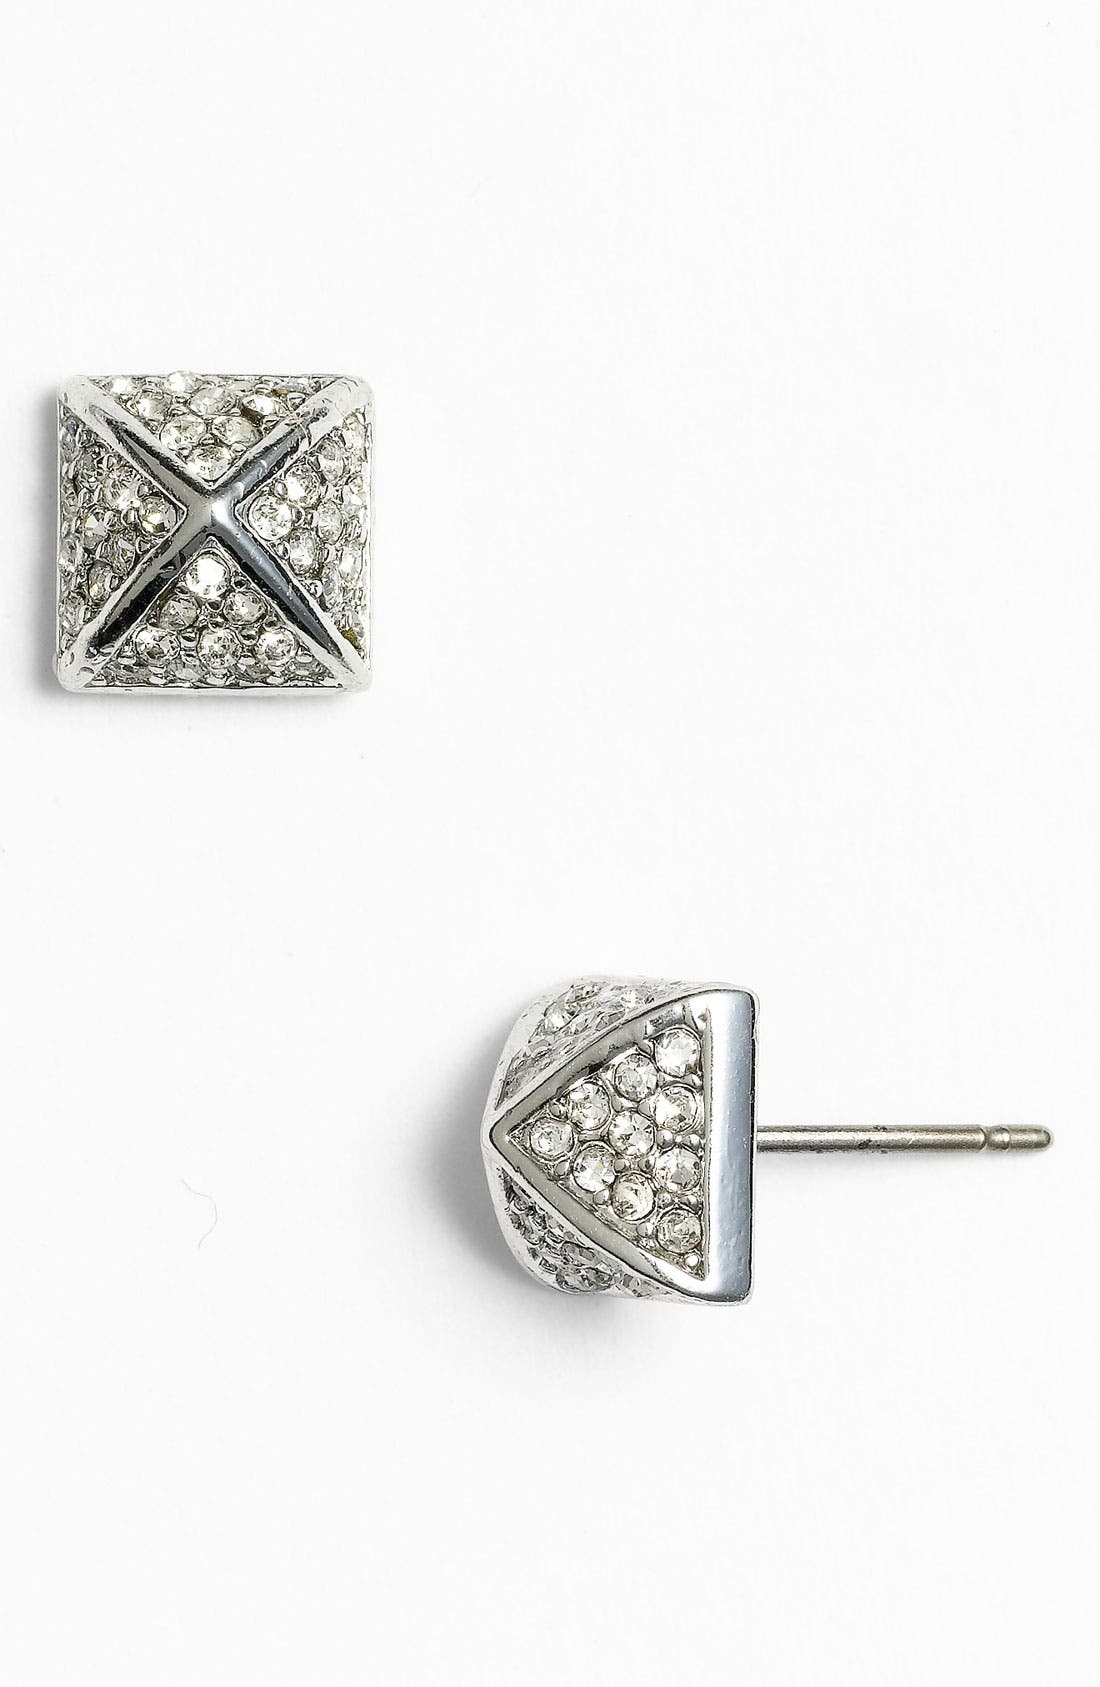 Main Image - Juicy Couture 'Punk Royals' Pyramid Stud Earrings